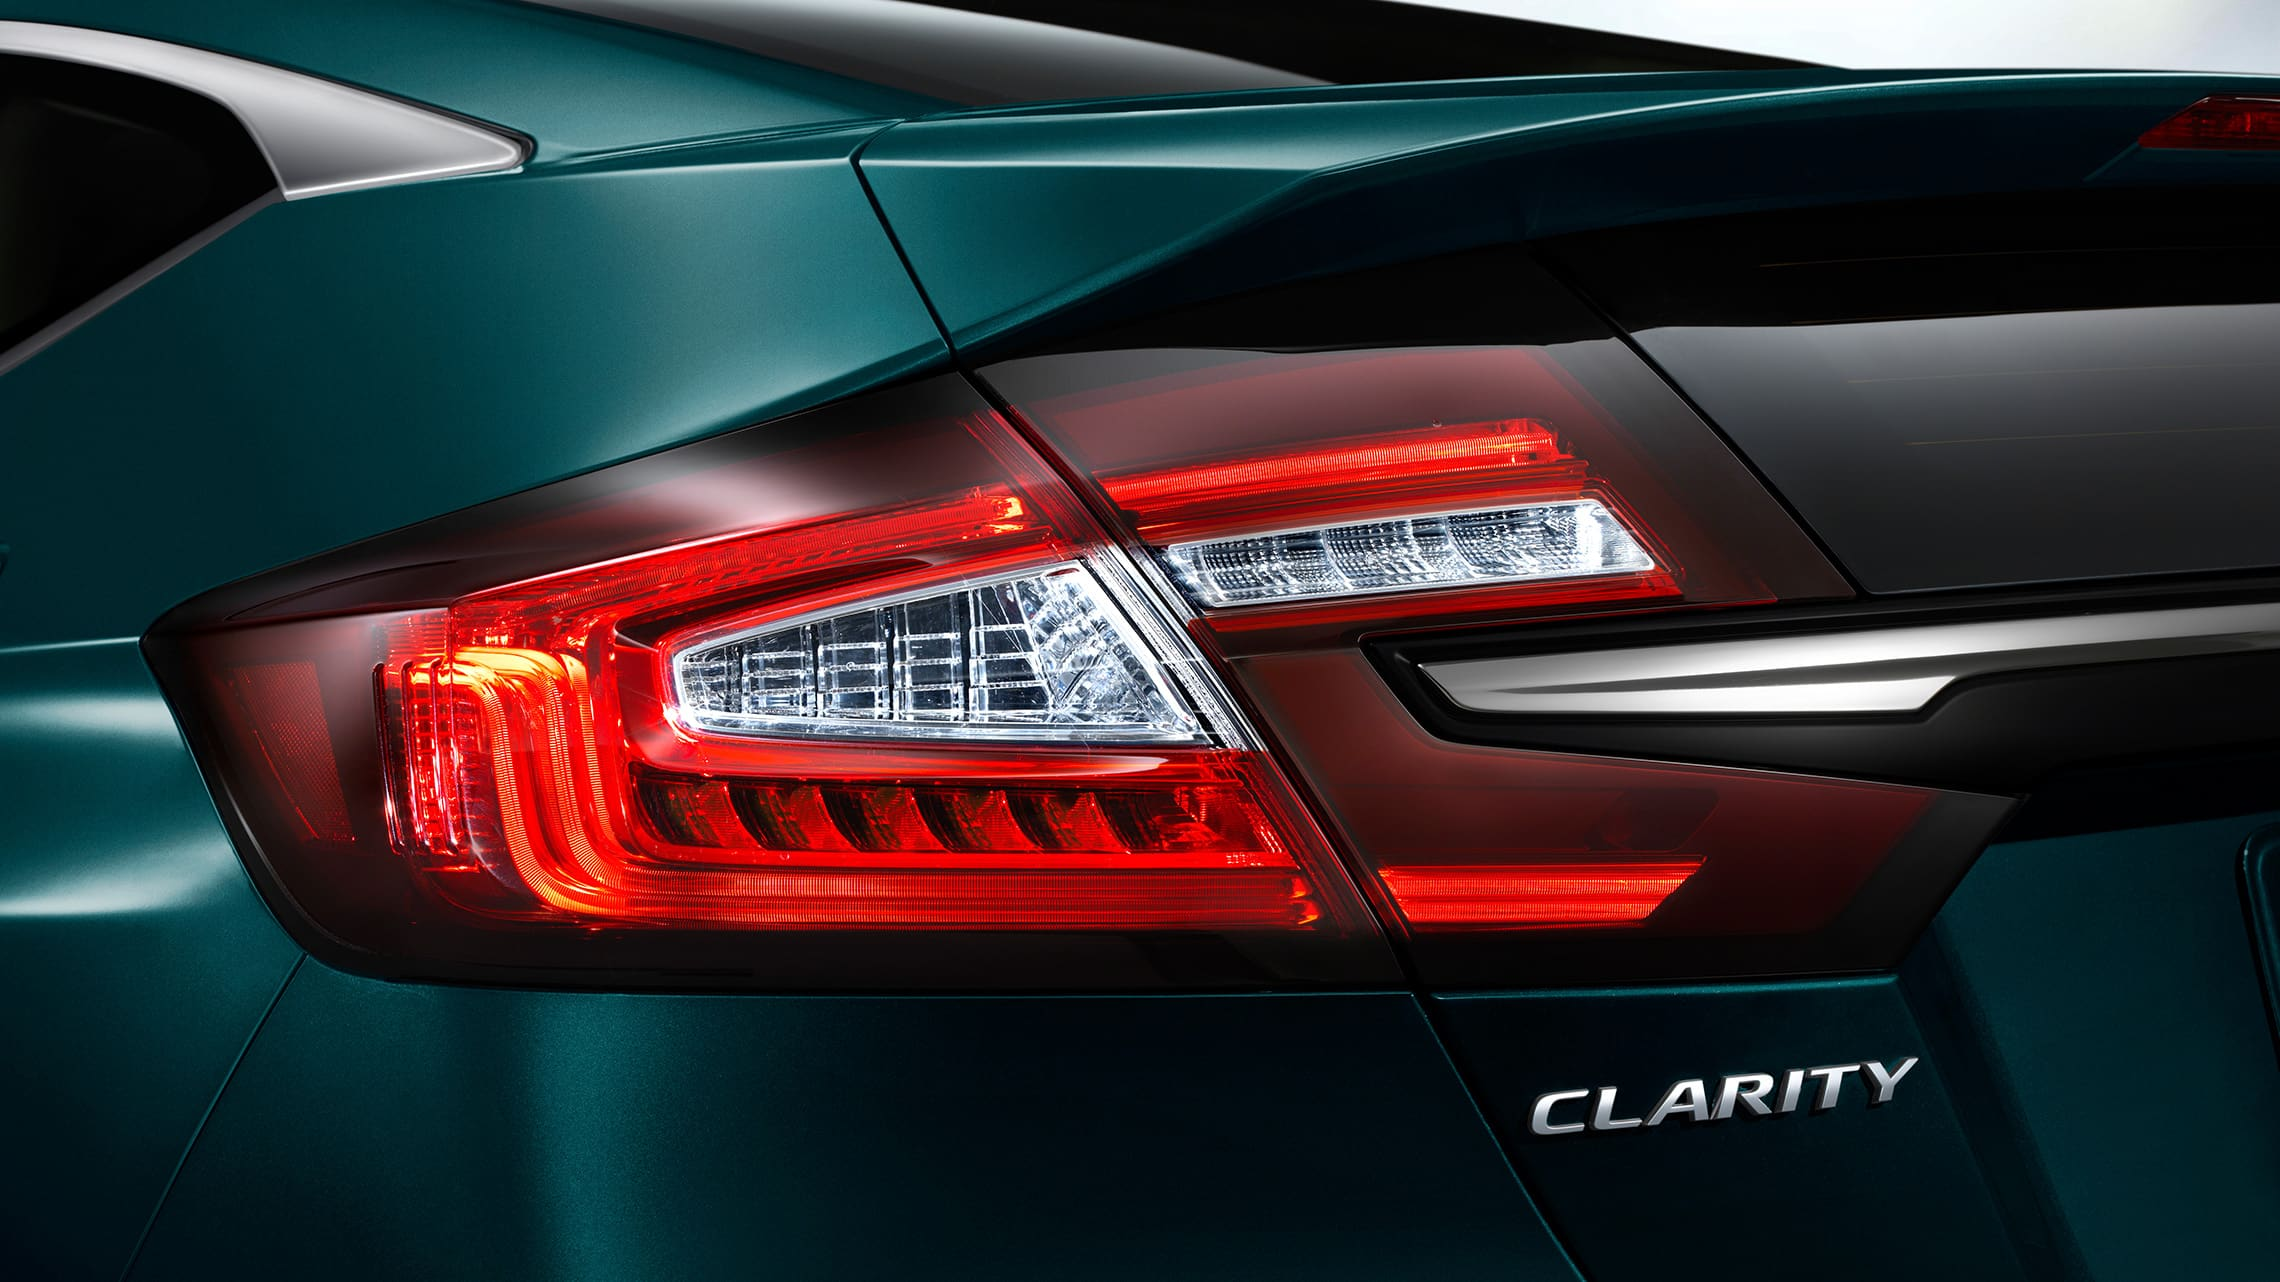 Detail of LED taillights on 2020 Clarity Plug-In Hybrid in Moonlit Forest Pearl.